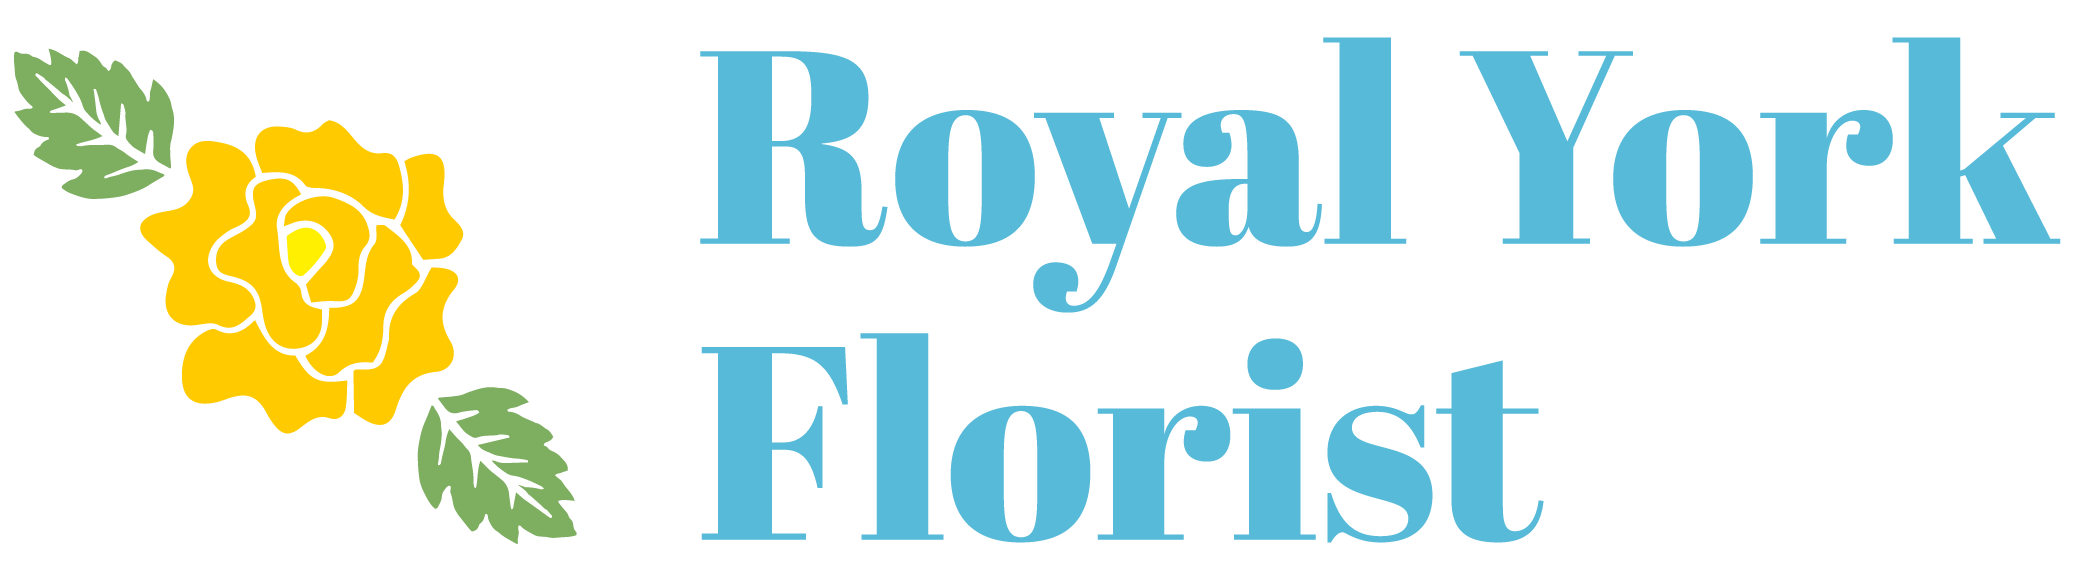 Royal York Florist - Flower Delivery in York, ON